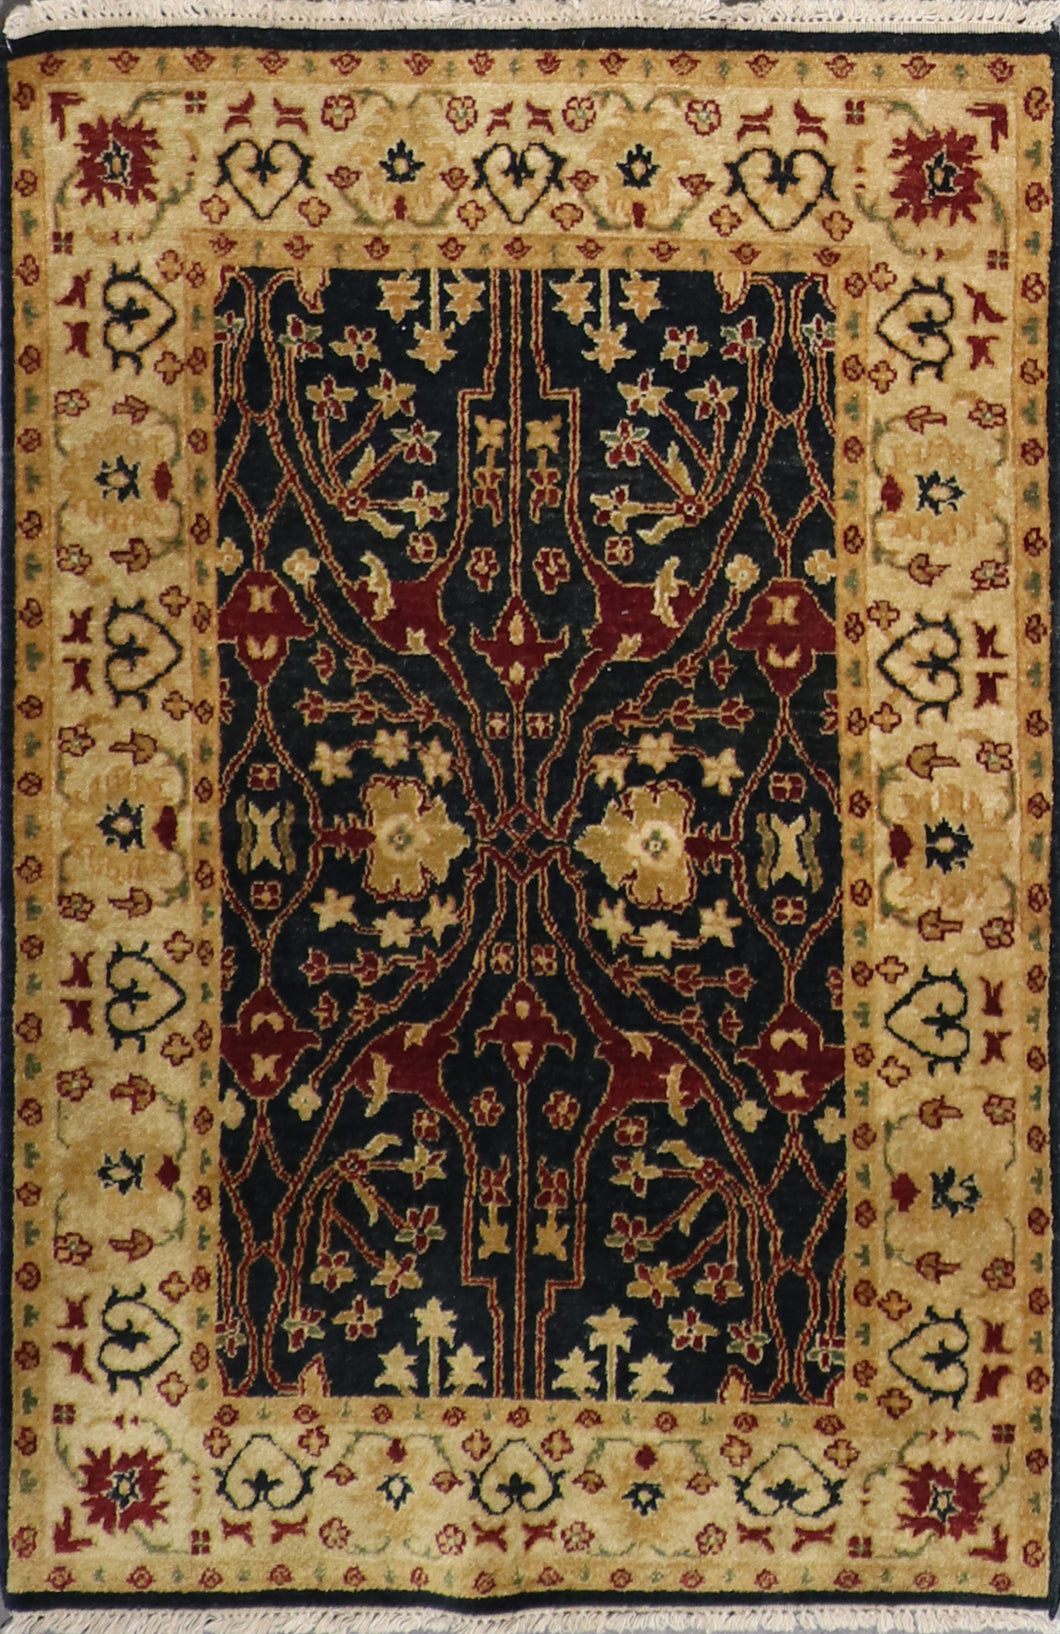 4'x6' Traditional Charcoal Wool Hand-Knotted Rug - Direct Rug Import | Rugs in Chicago, Indiana,South Bend,Granger